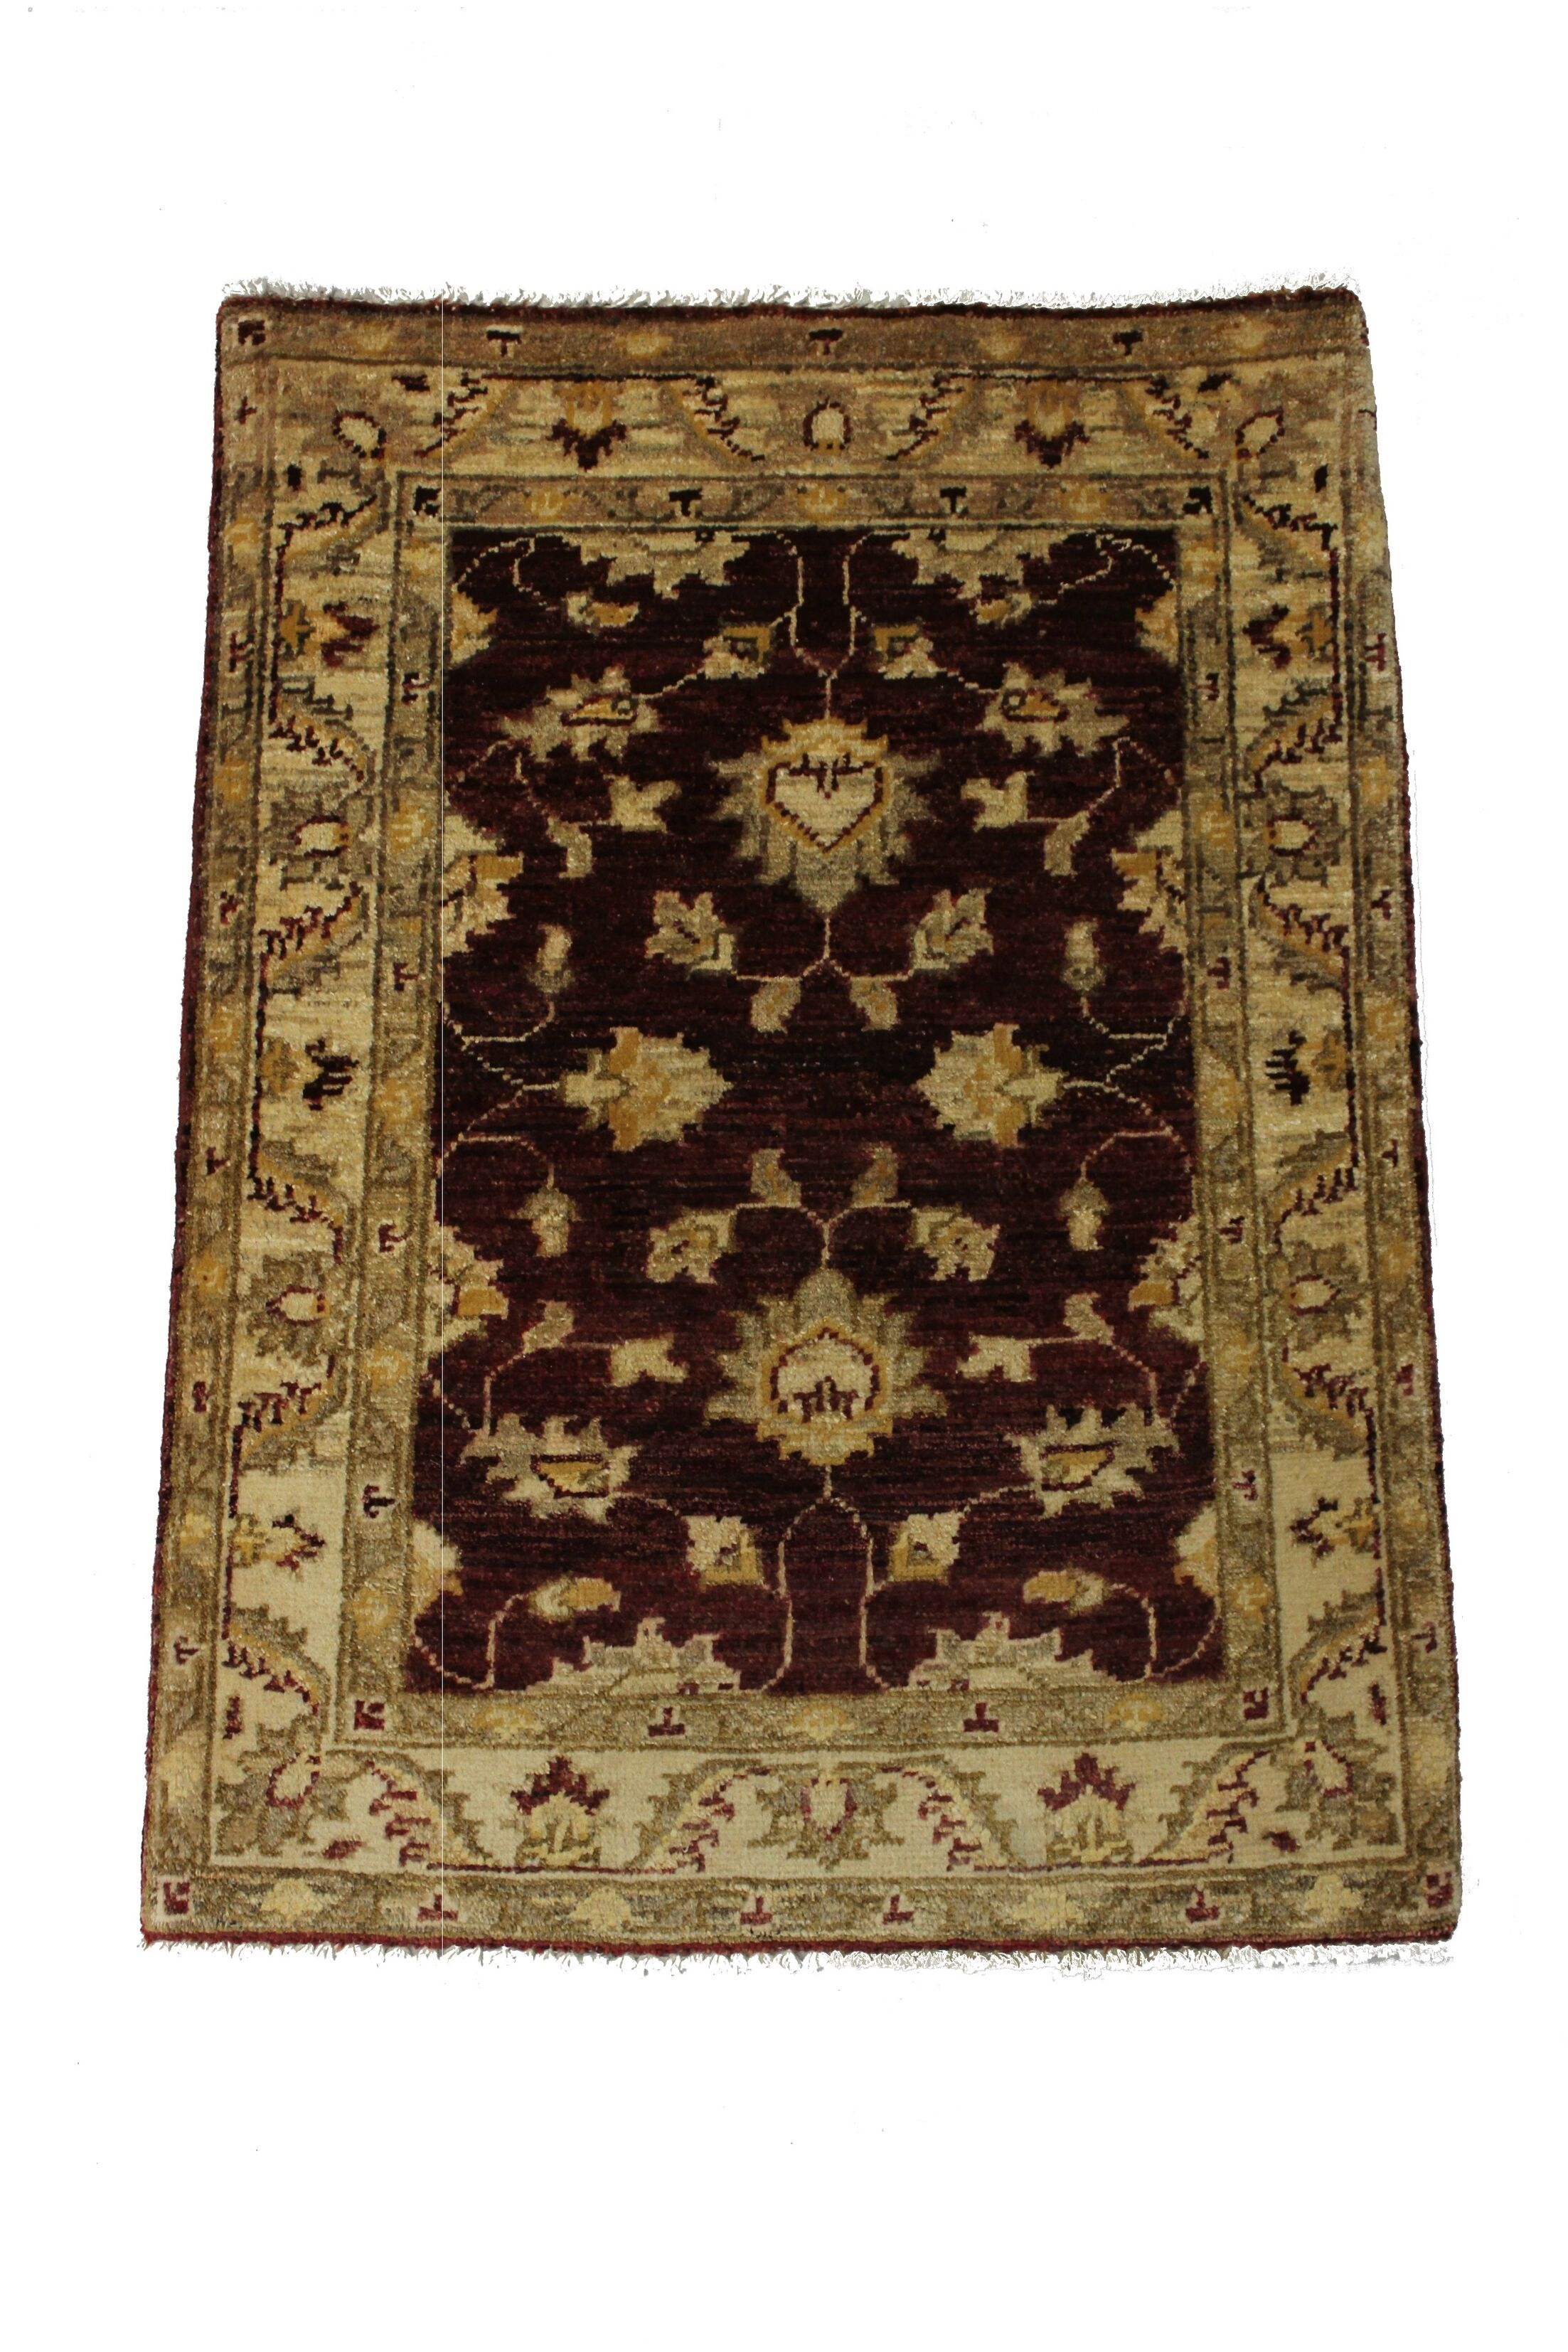 Rolland Hand Woven Red/Brown Wool Area Rug